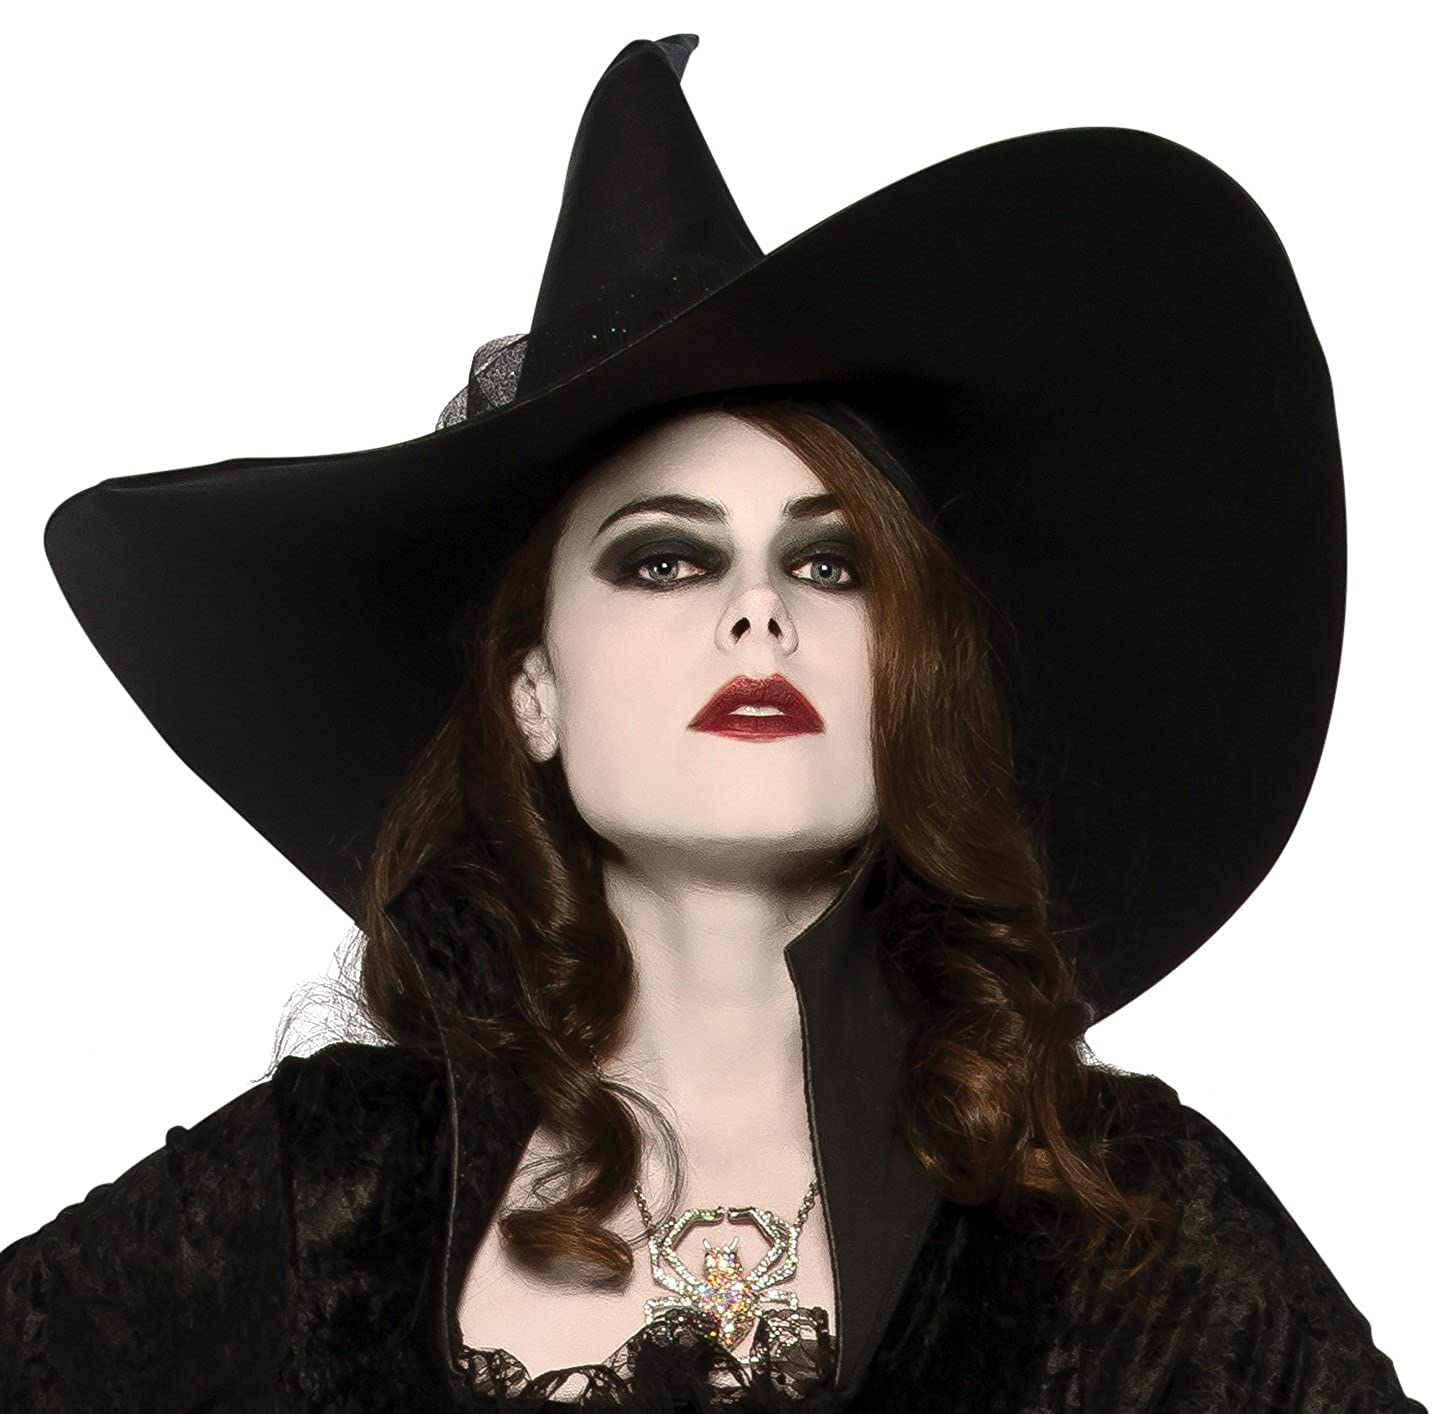 Rubie's Costume Co. Women's Witches Hat Black One Size Rubies Costumes - Apparel 34301